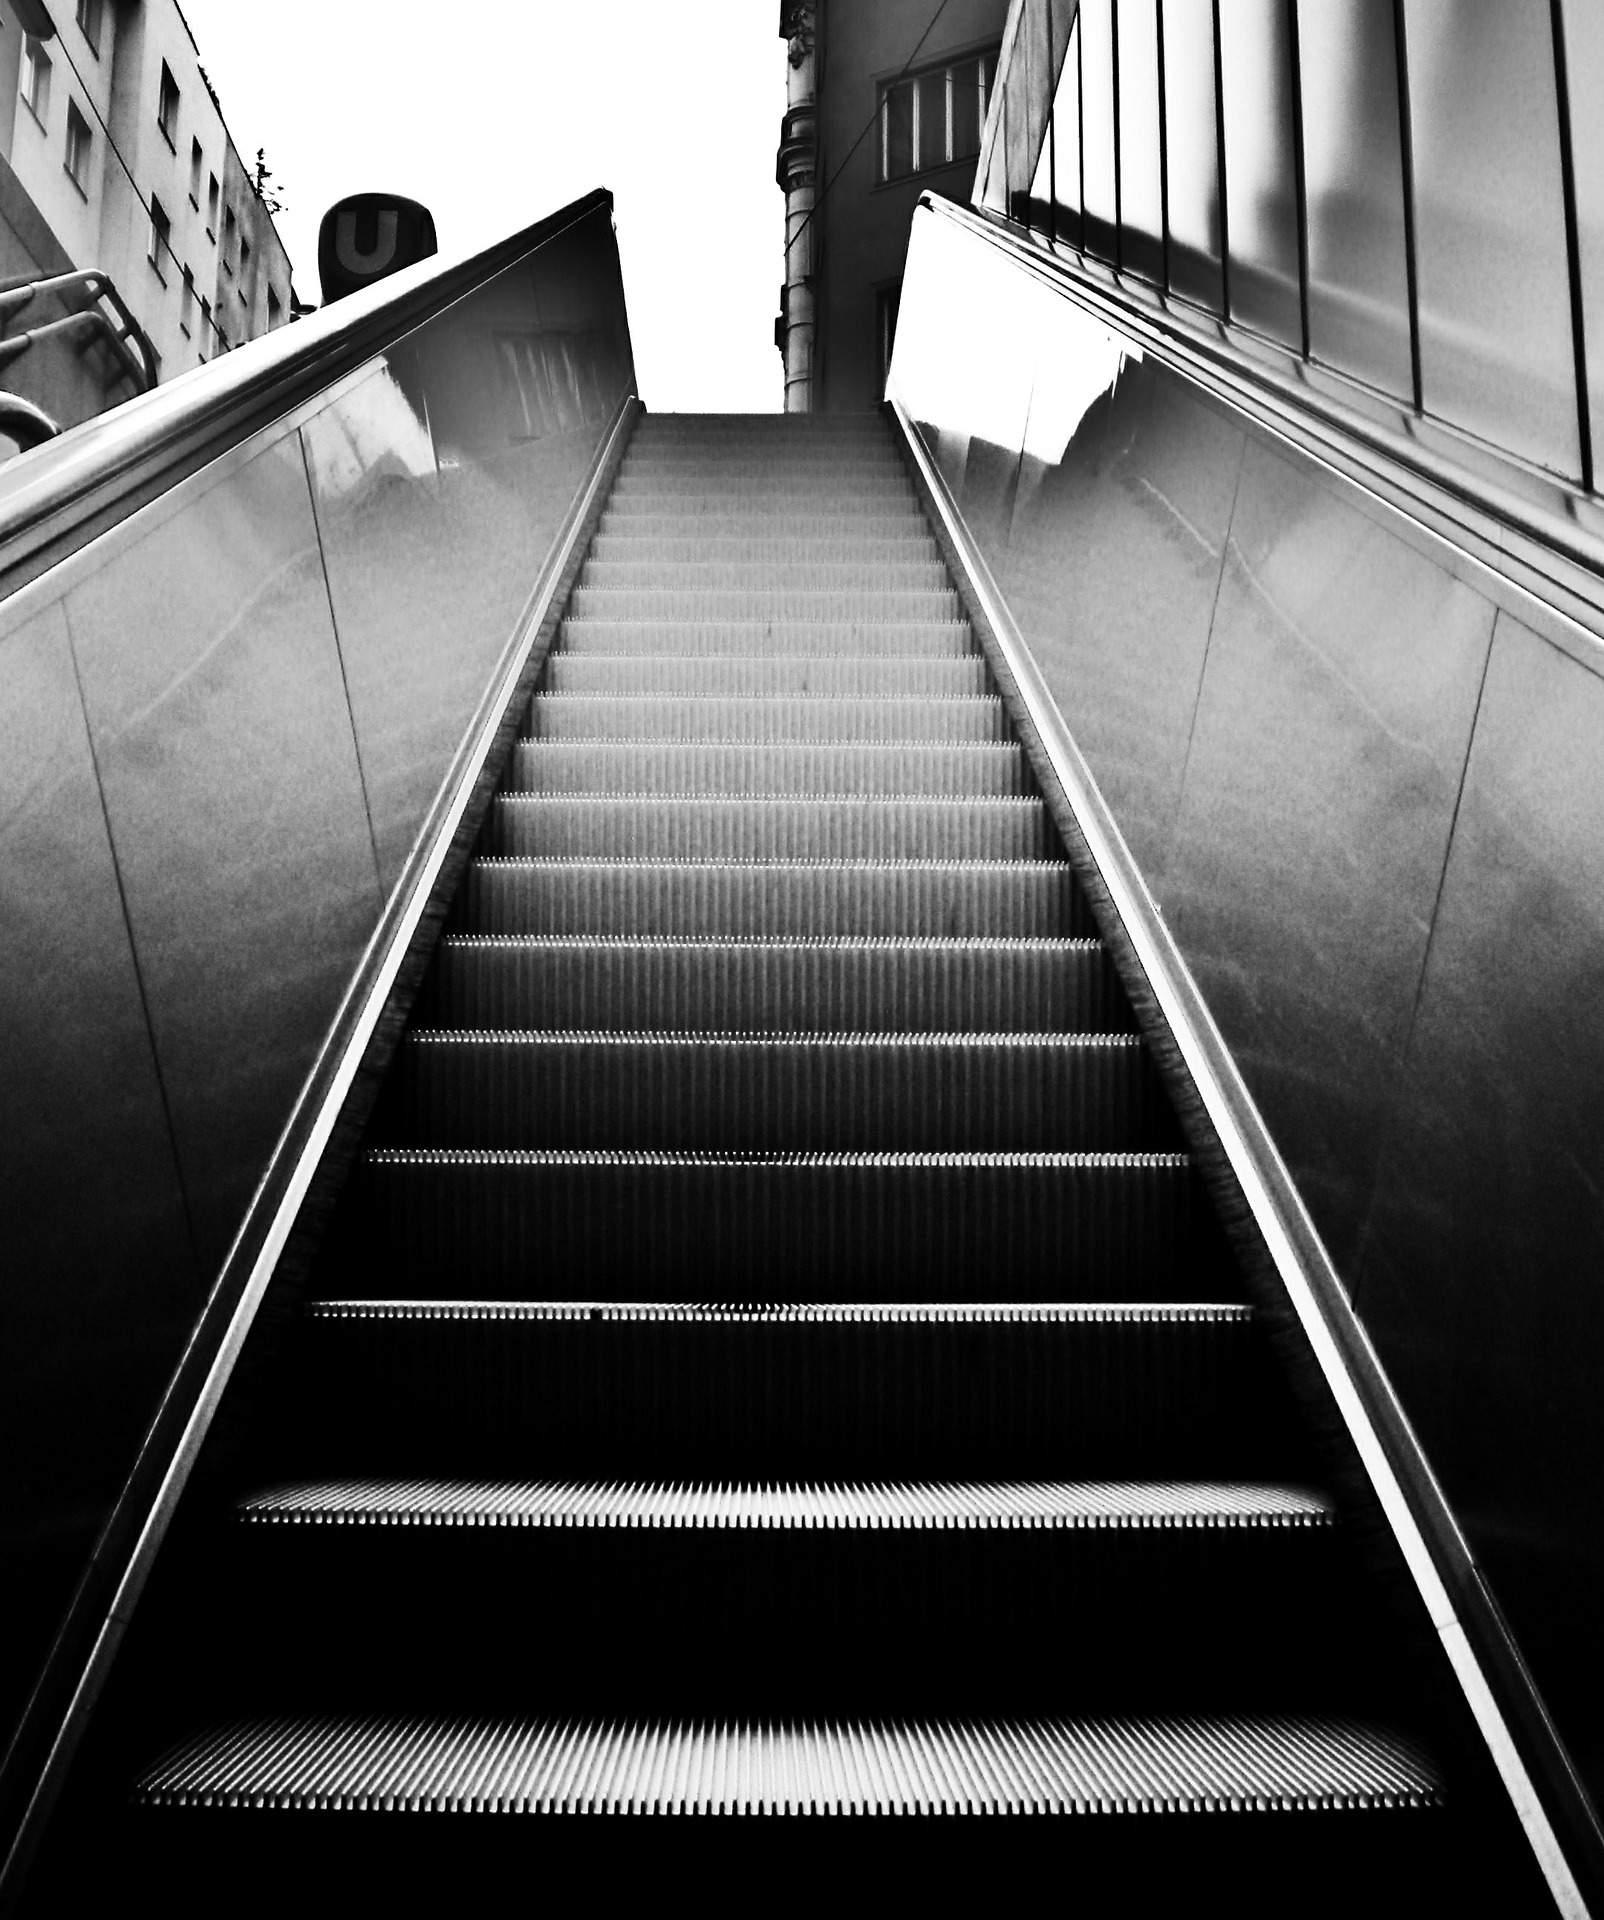 A black-and-white photo of an escalator.